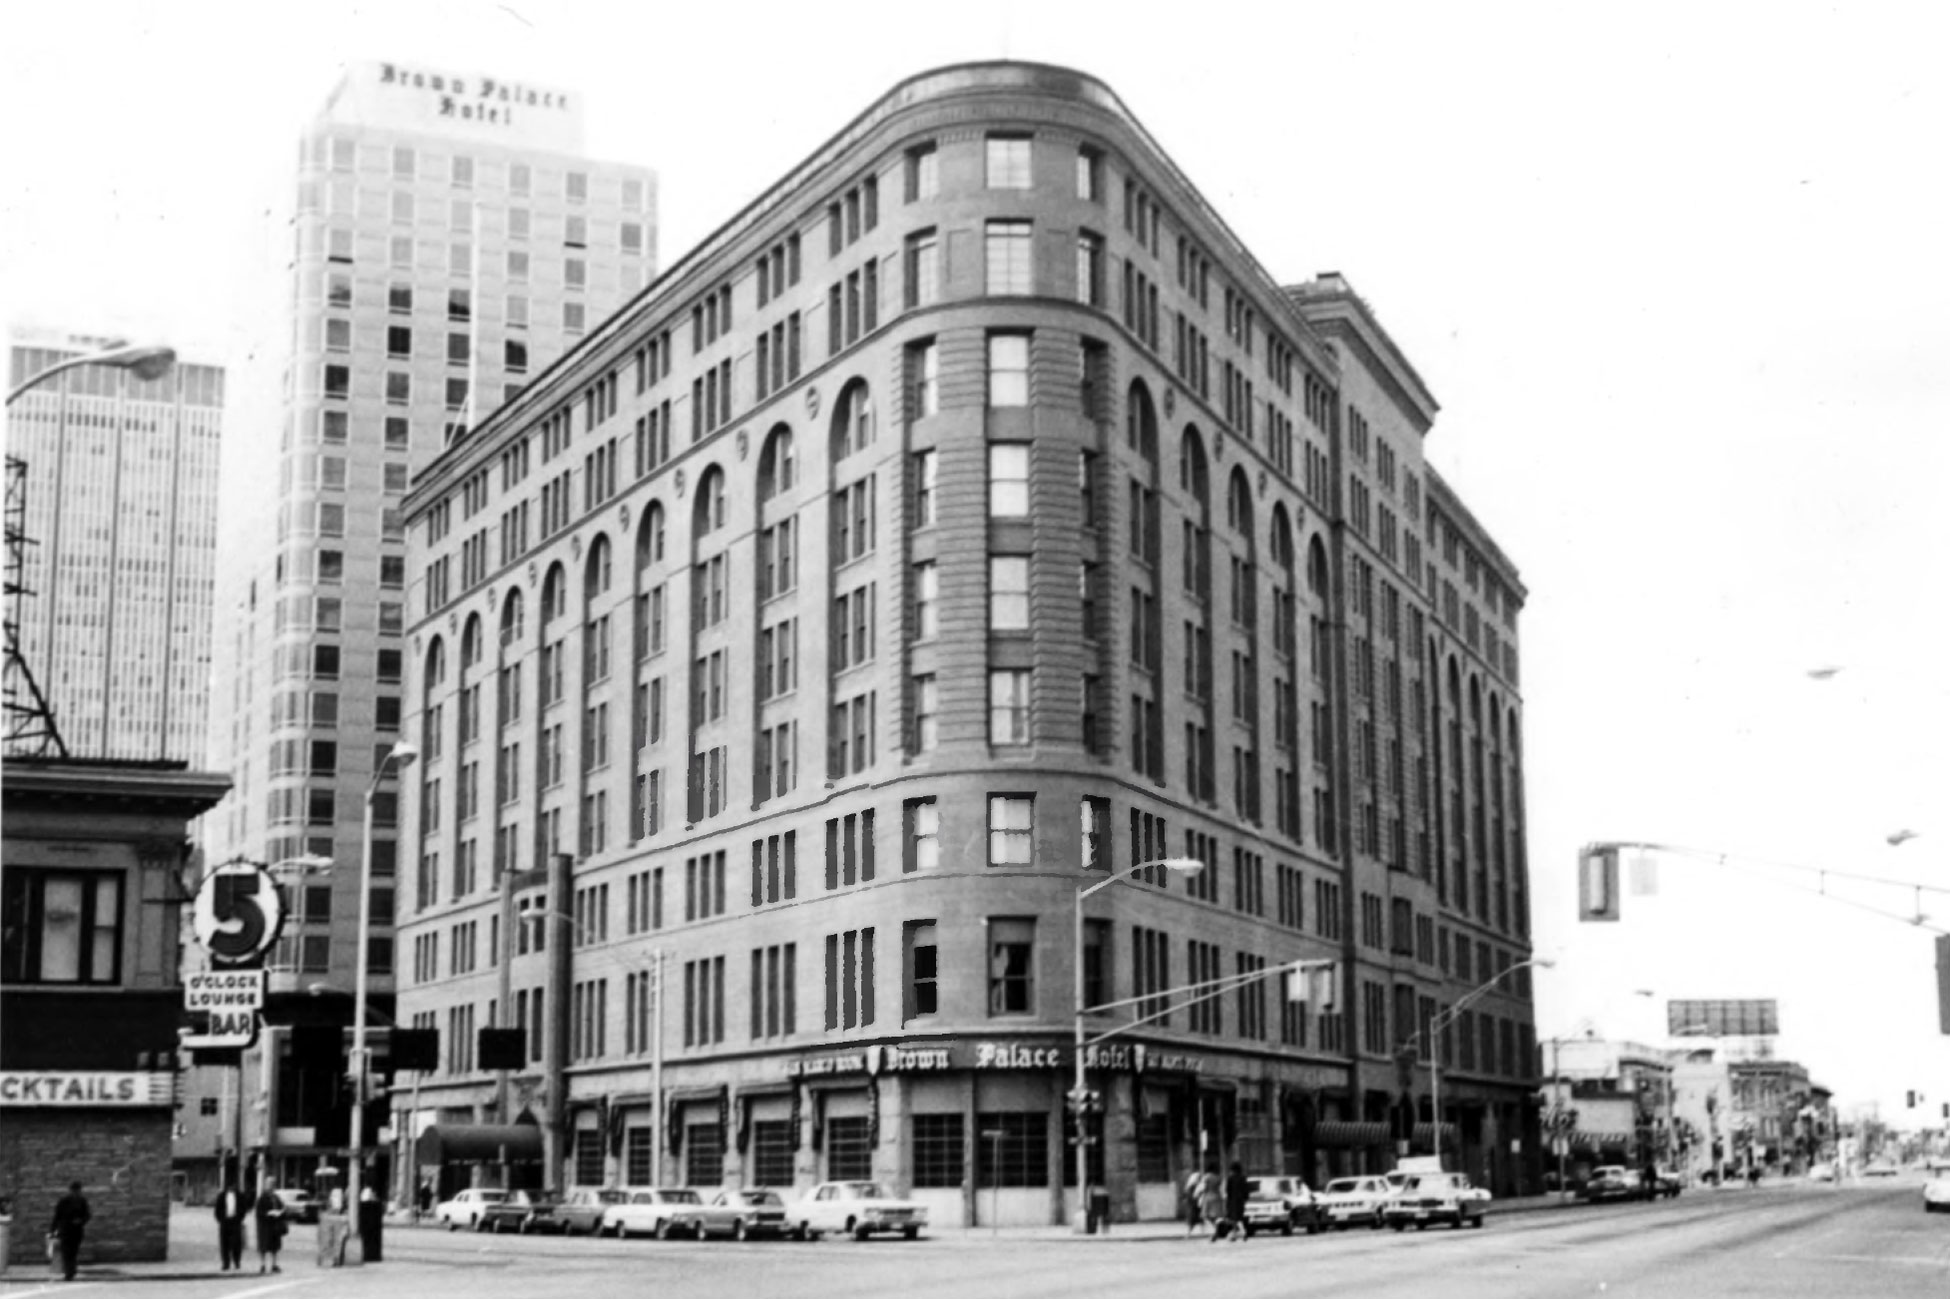 <p>The Brown Palace hotel, originally built in 1892, sits on 17thand Tremont street in Denver, Colo. in 1967.</p>